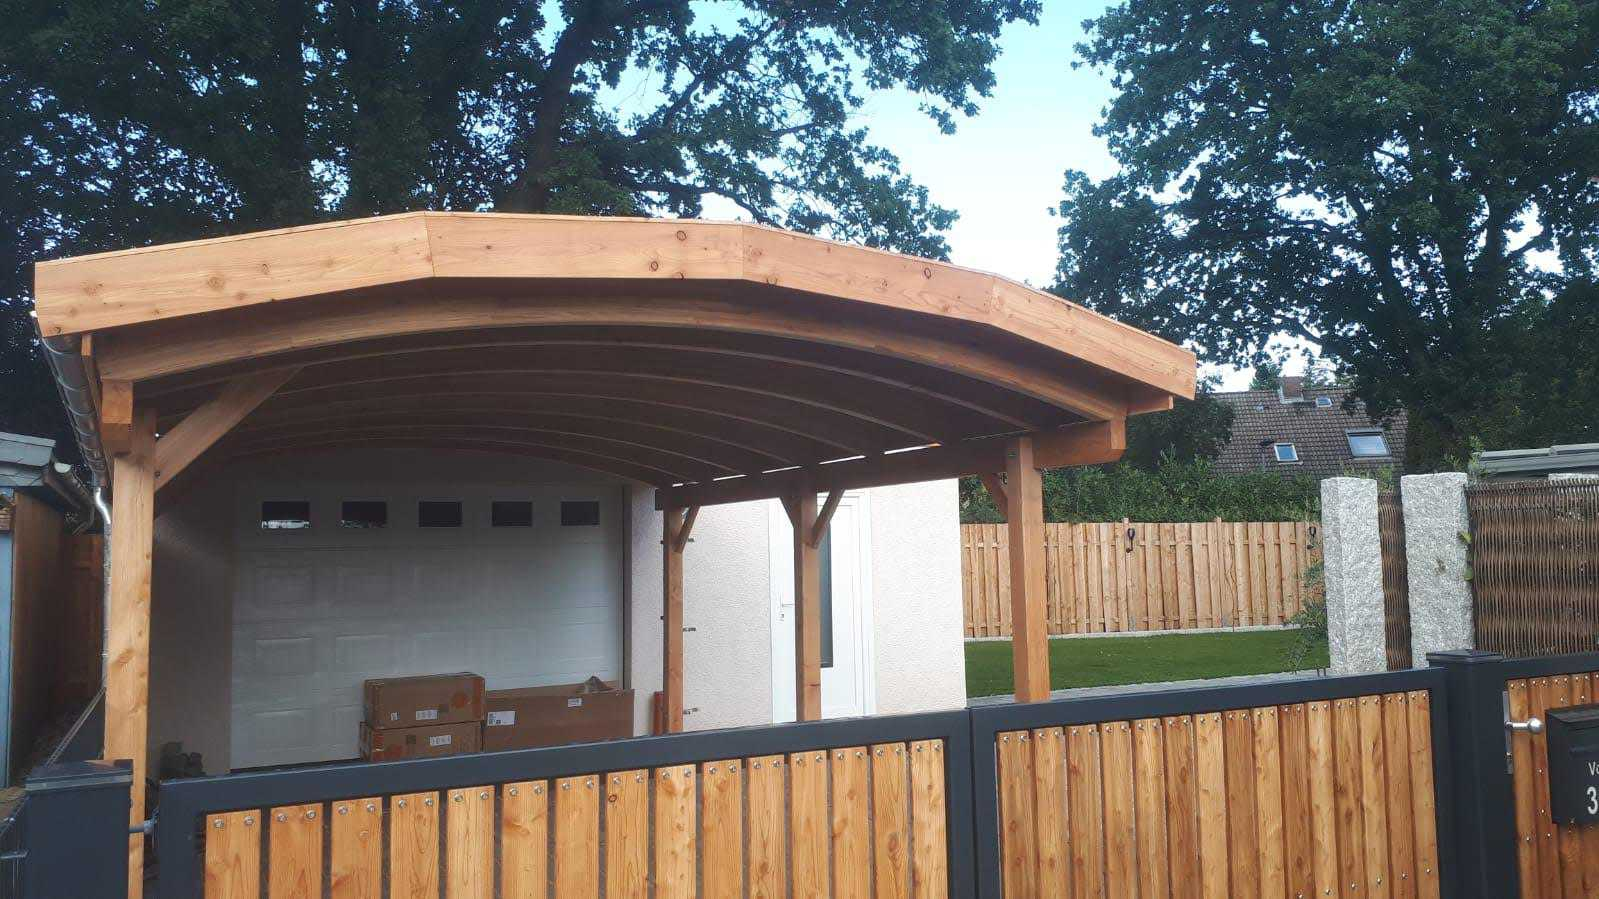 Bogendachcarport FREESE Holz